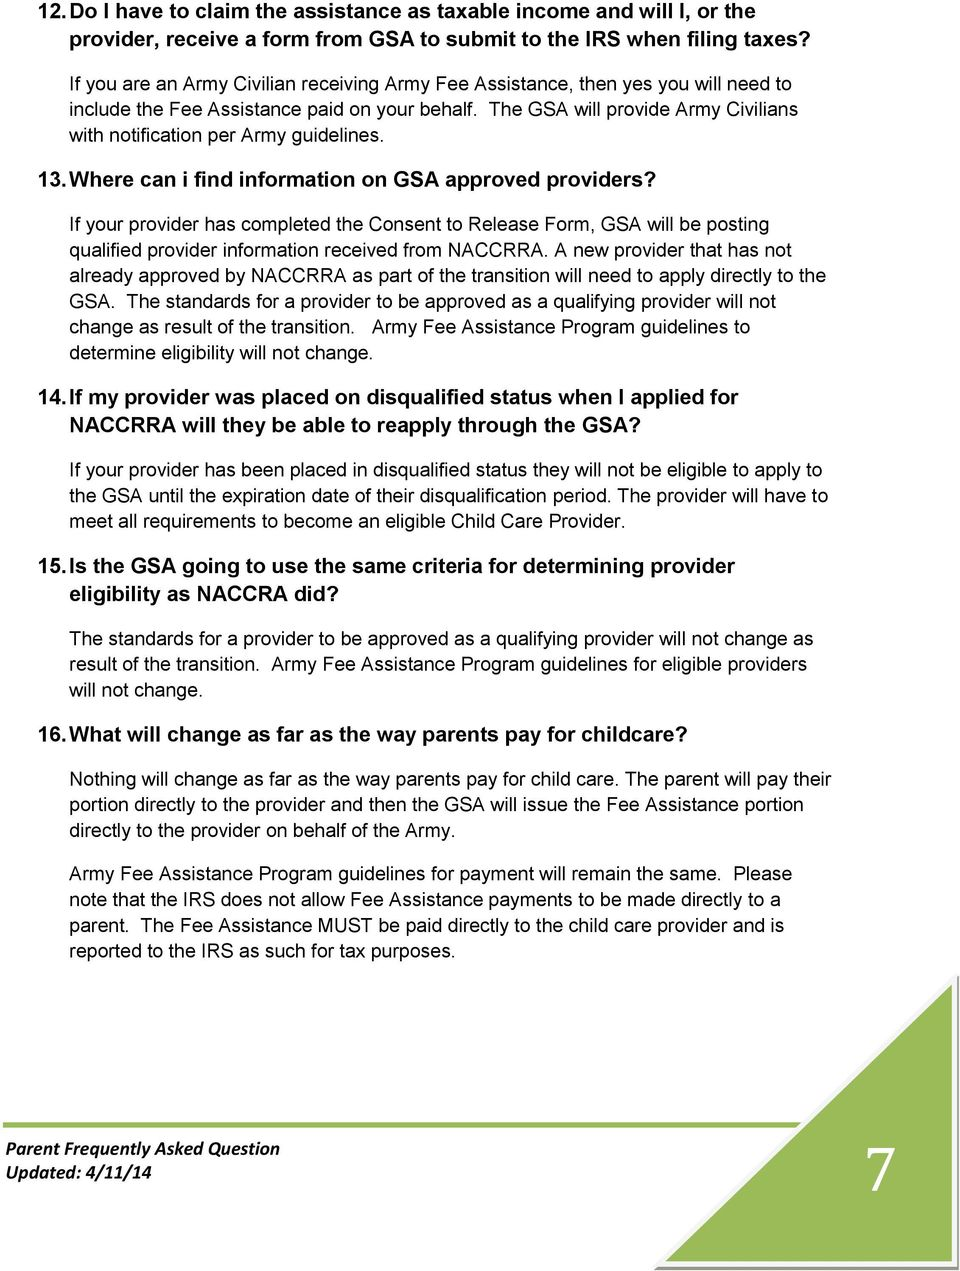 PARENT FREQUENTLY ASKED QUESTIONS - PDF